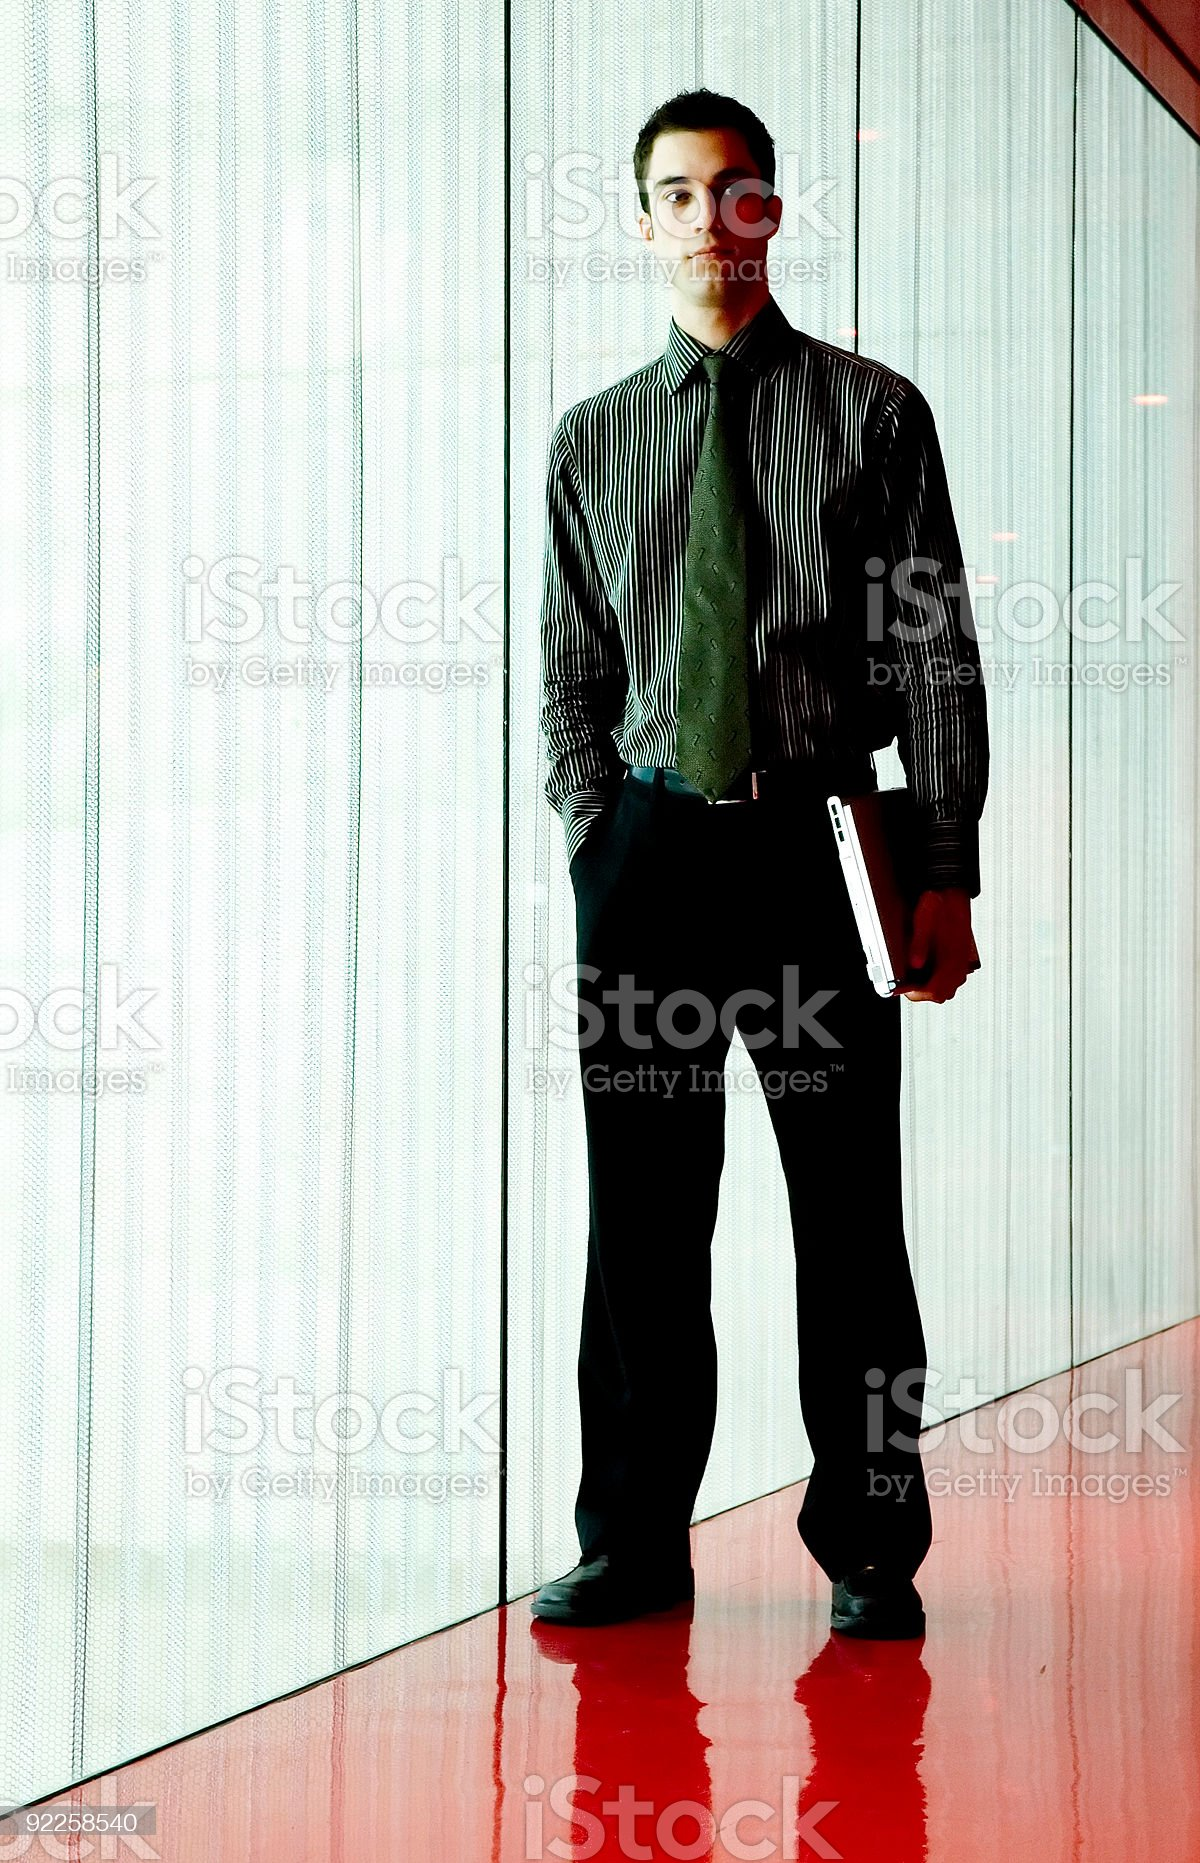 Business Man - Red Room 1 royalty-free stock photo